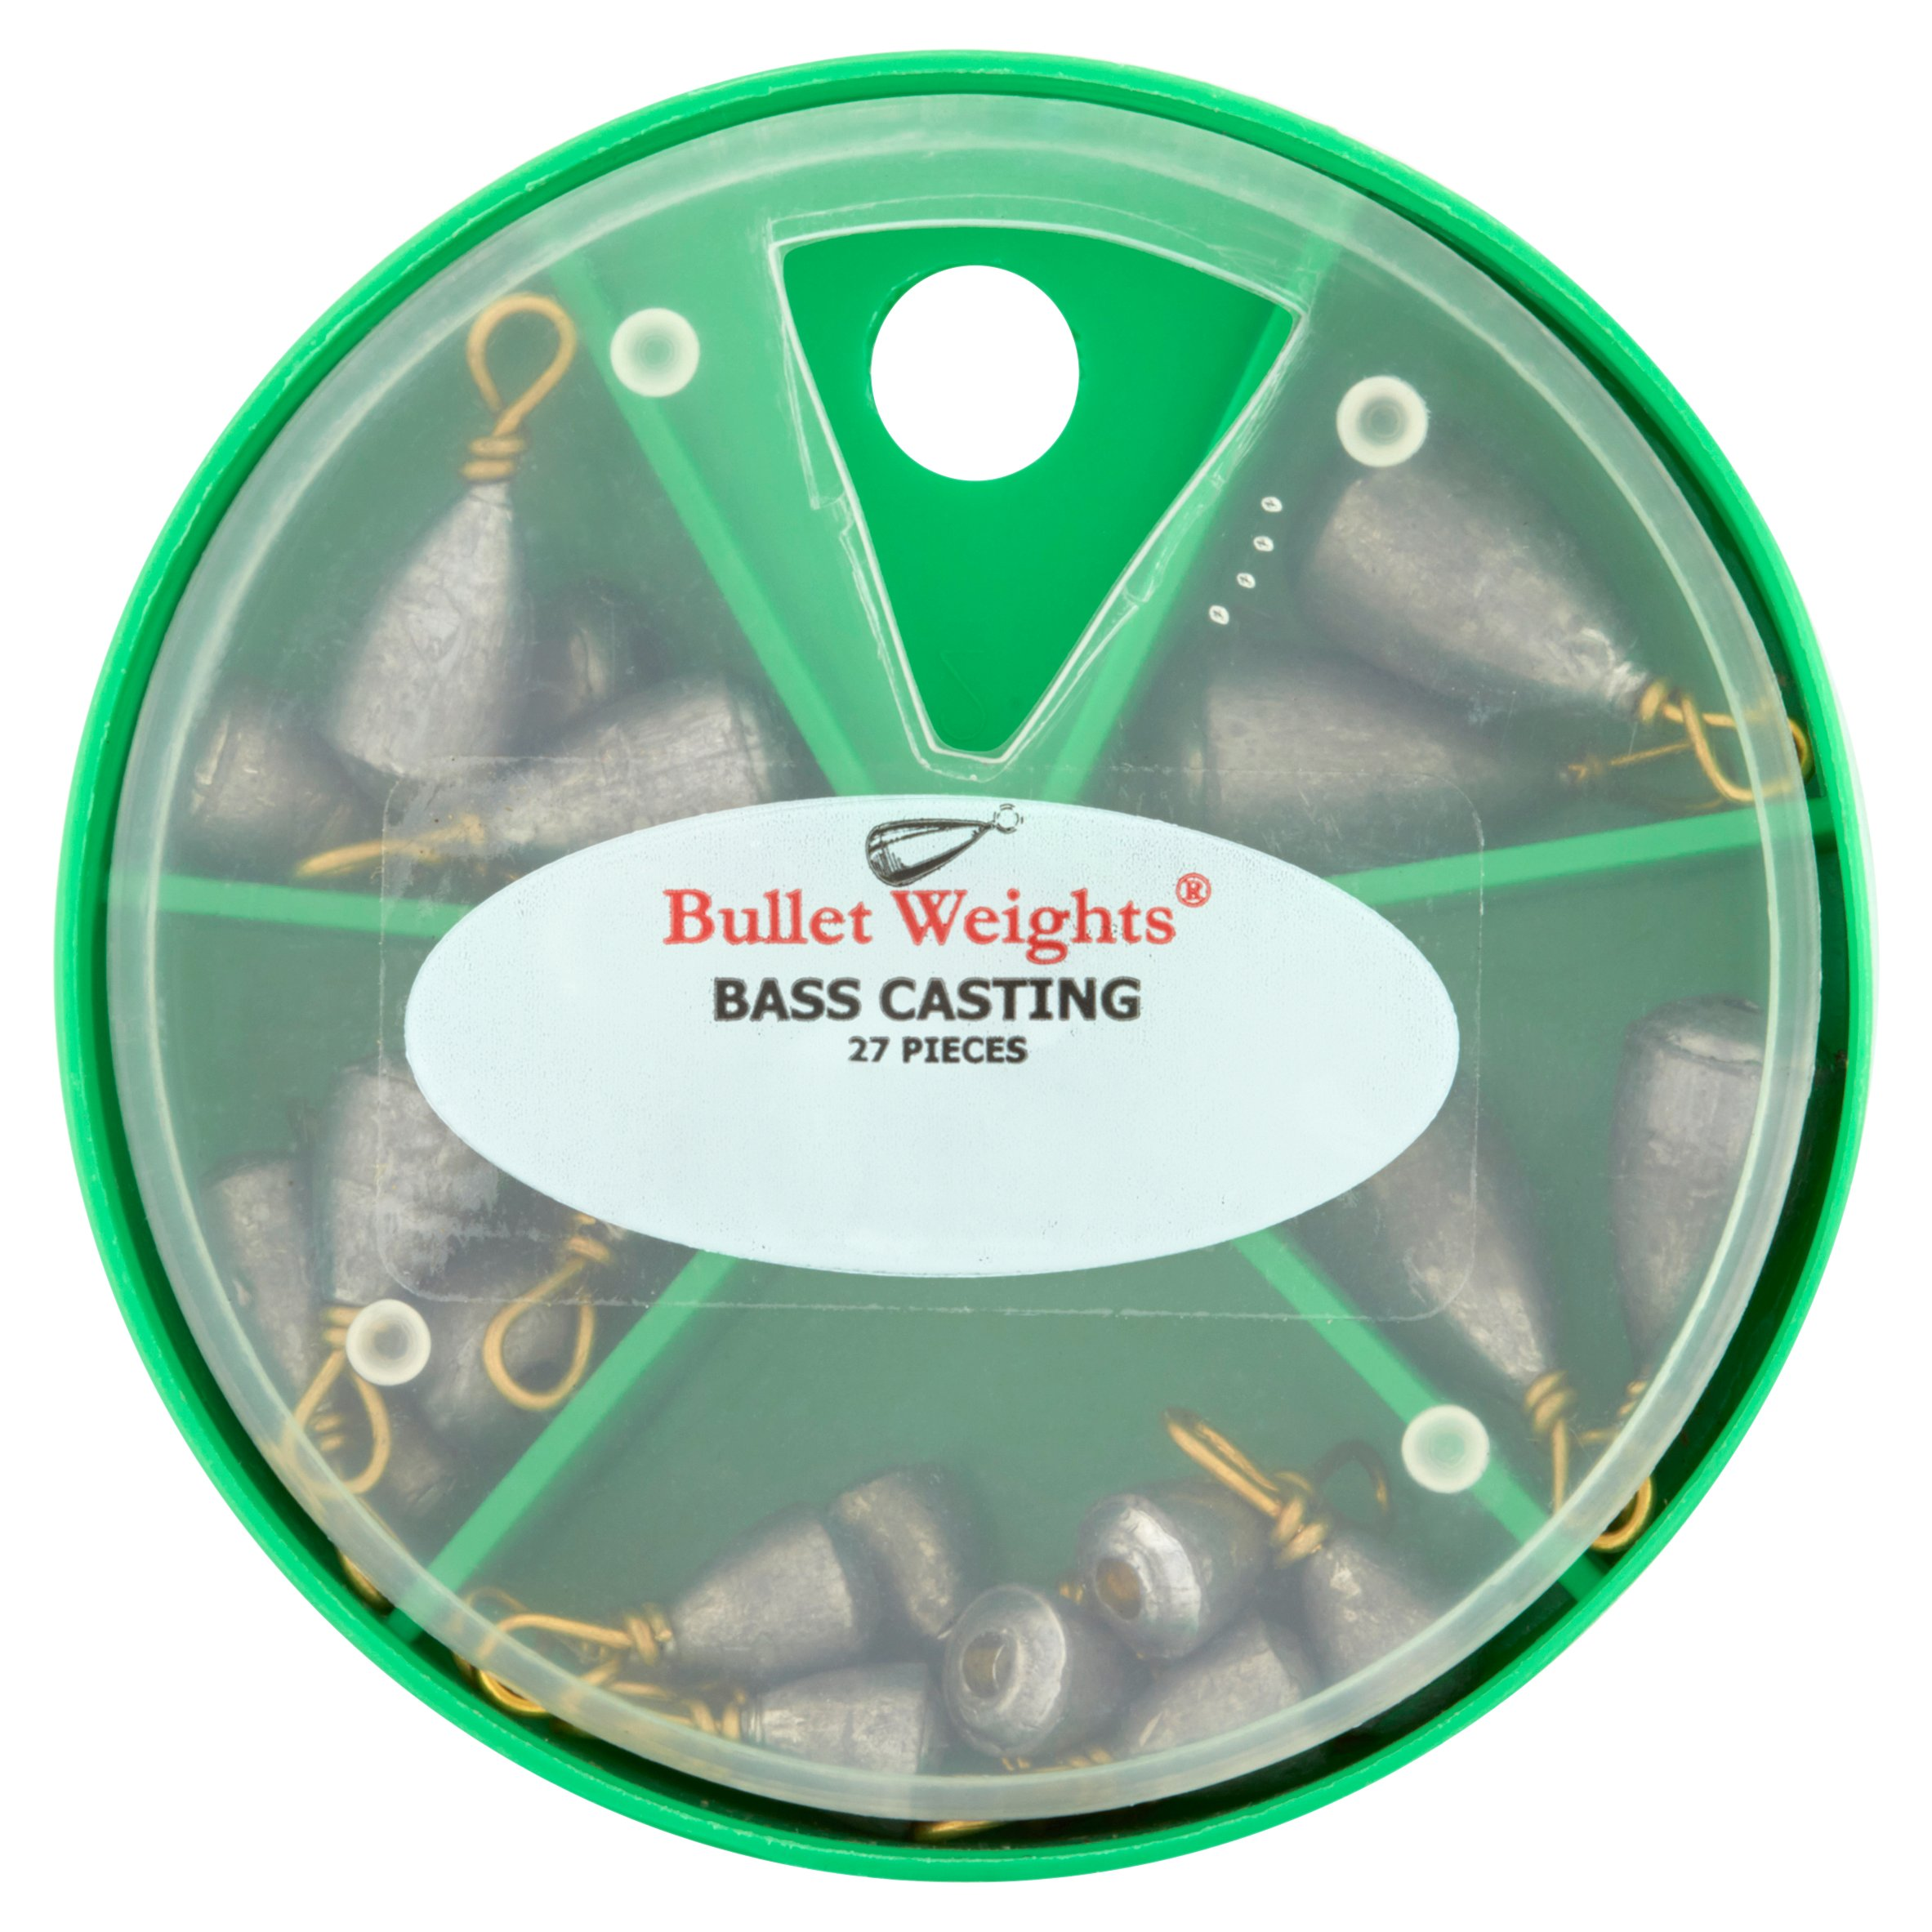 Bullet Weights® Bass Casting Skillet, 27 sinkers